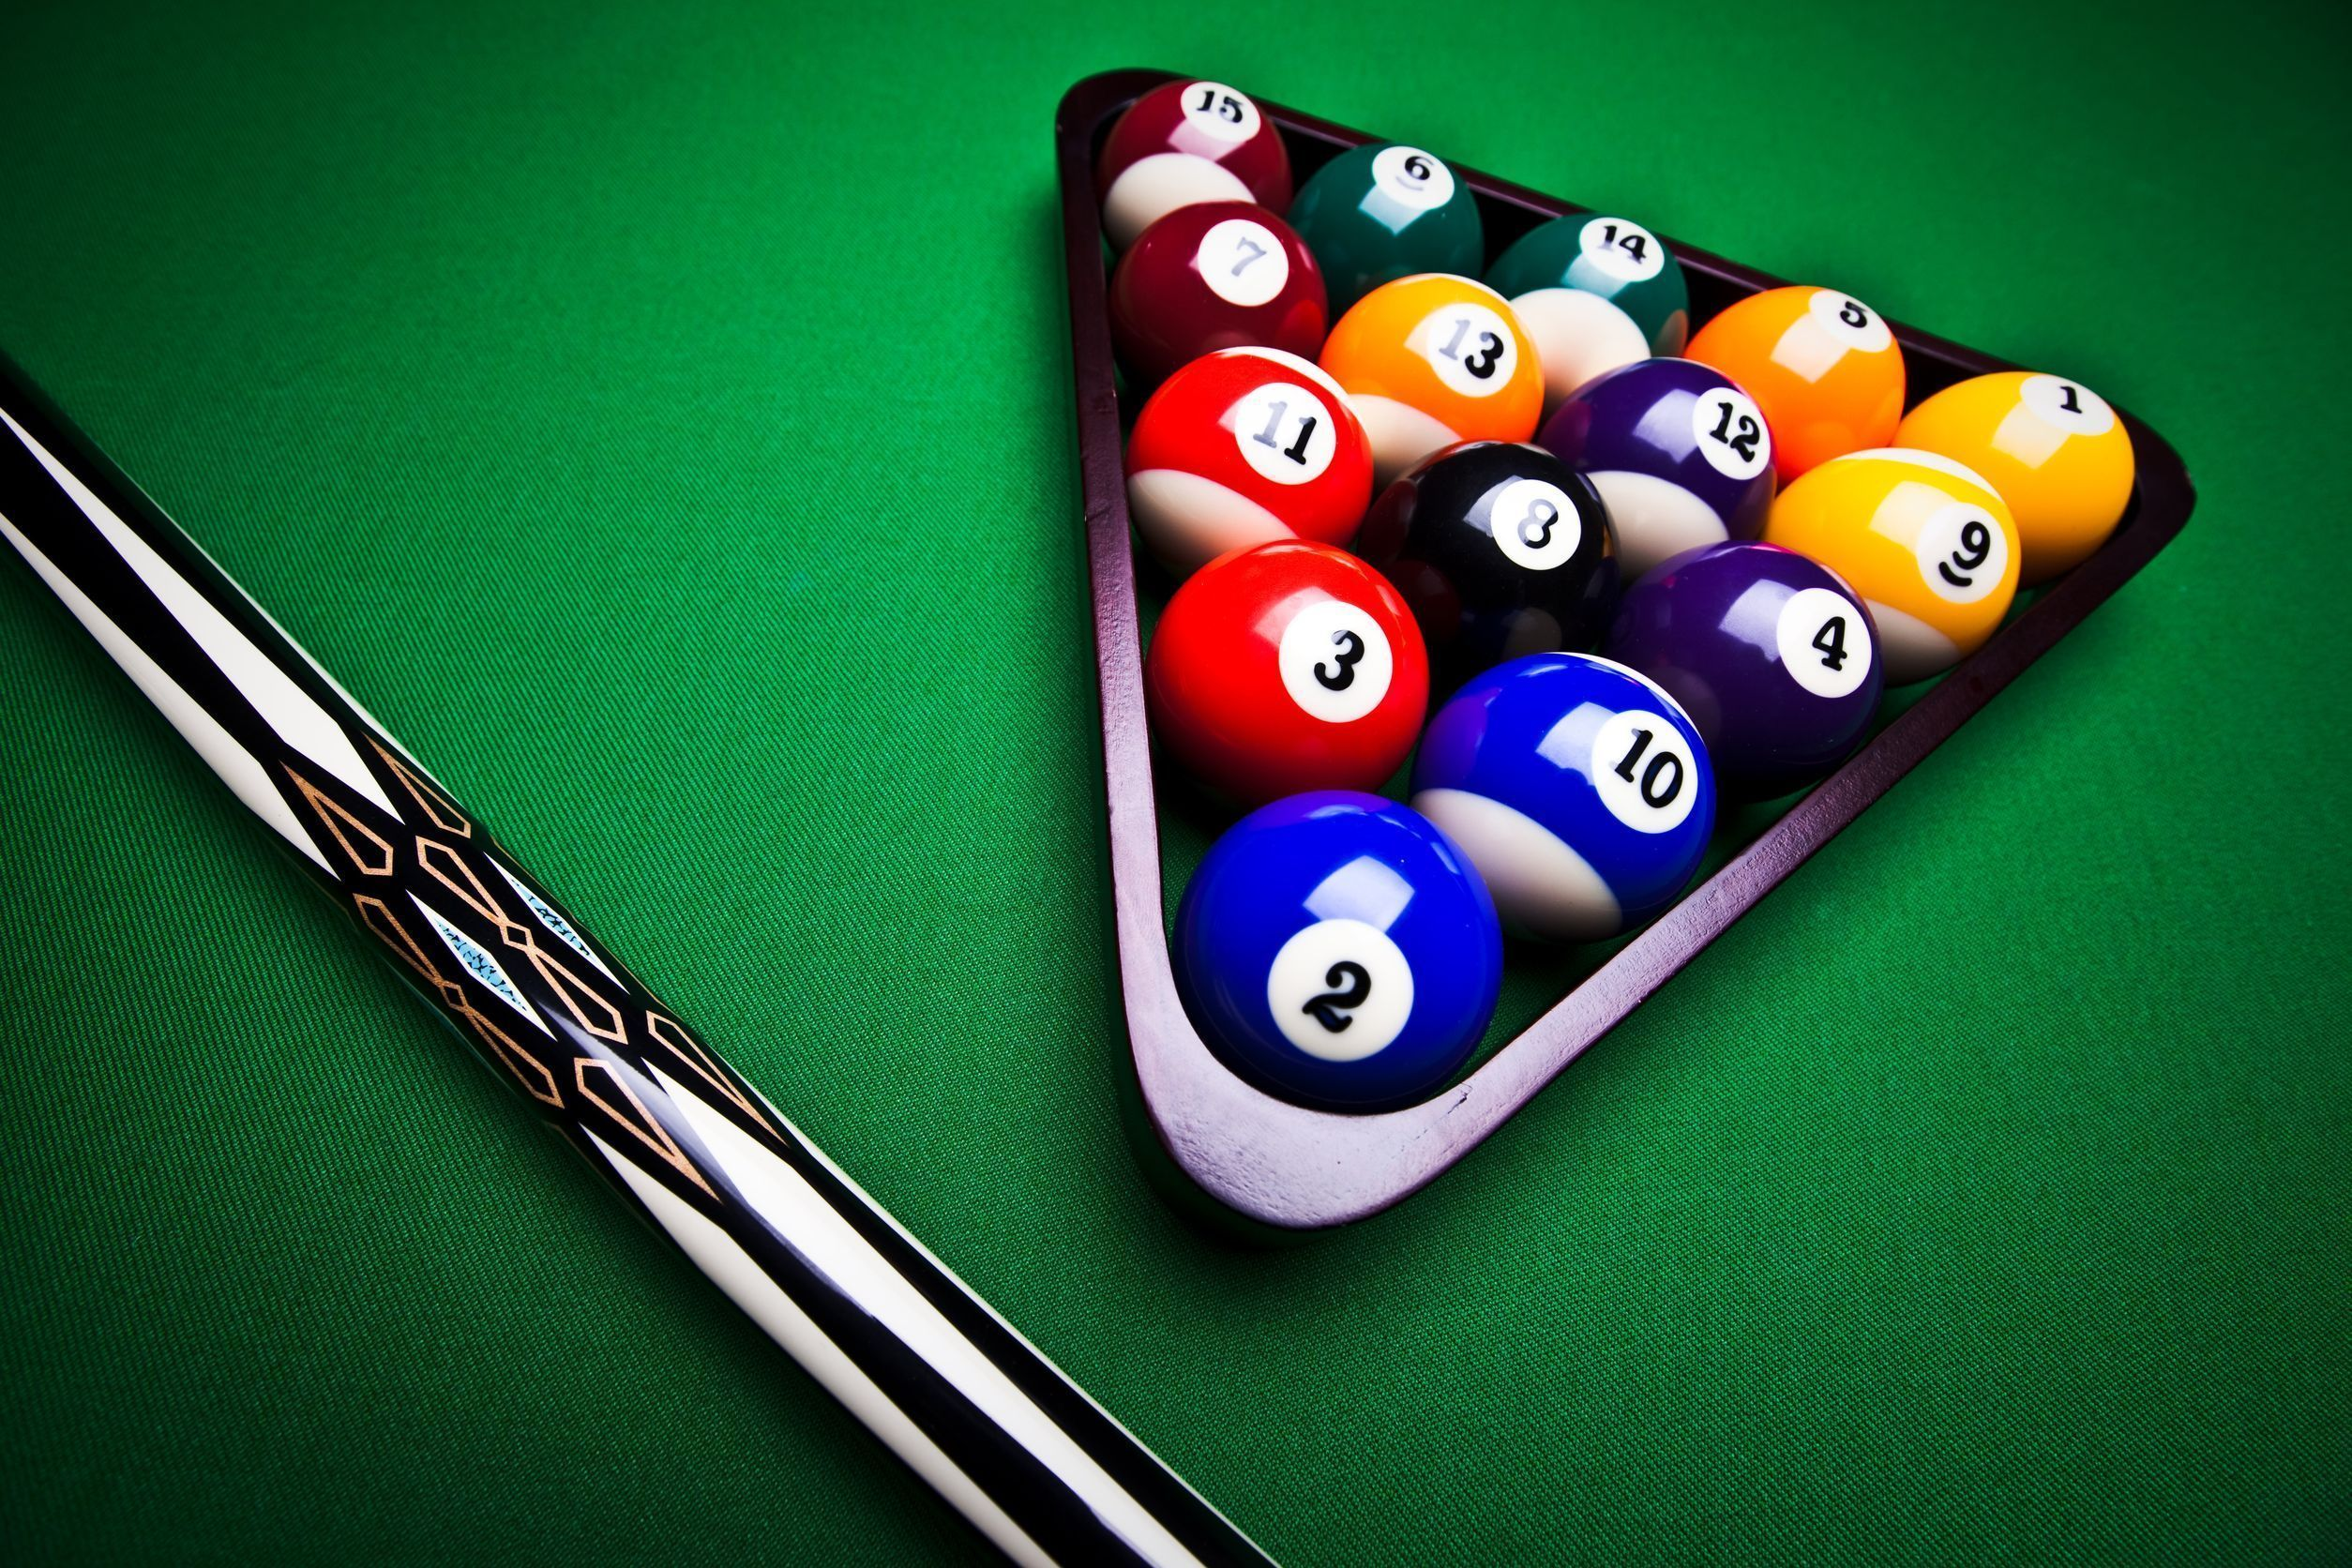 Billiards Wallpaper 28   [2508x1672] 2508x1672